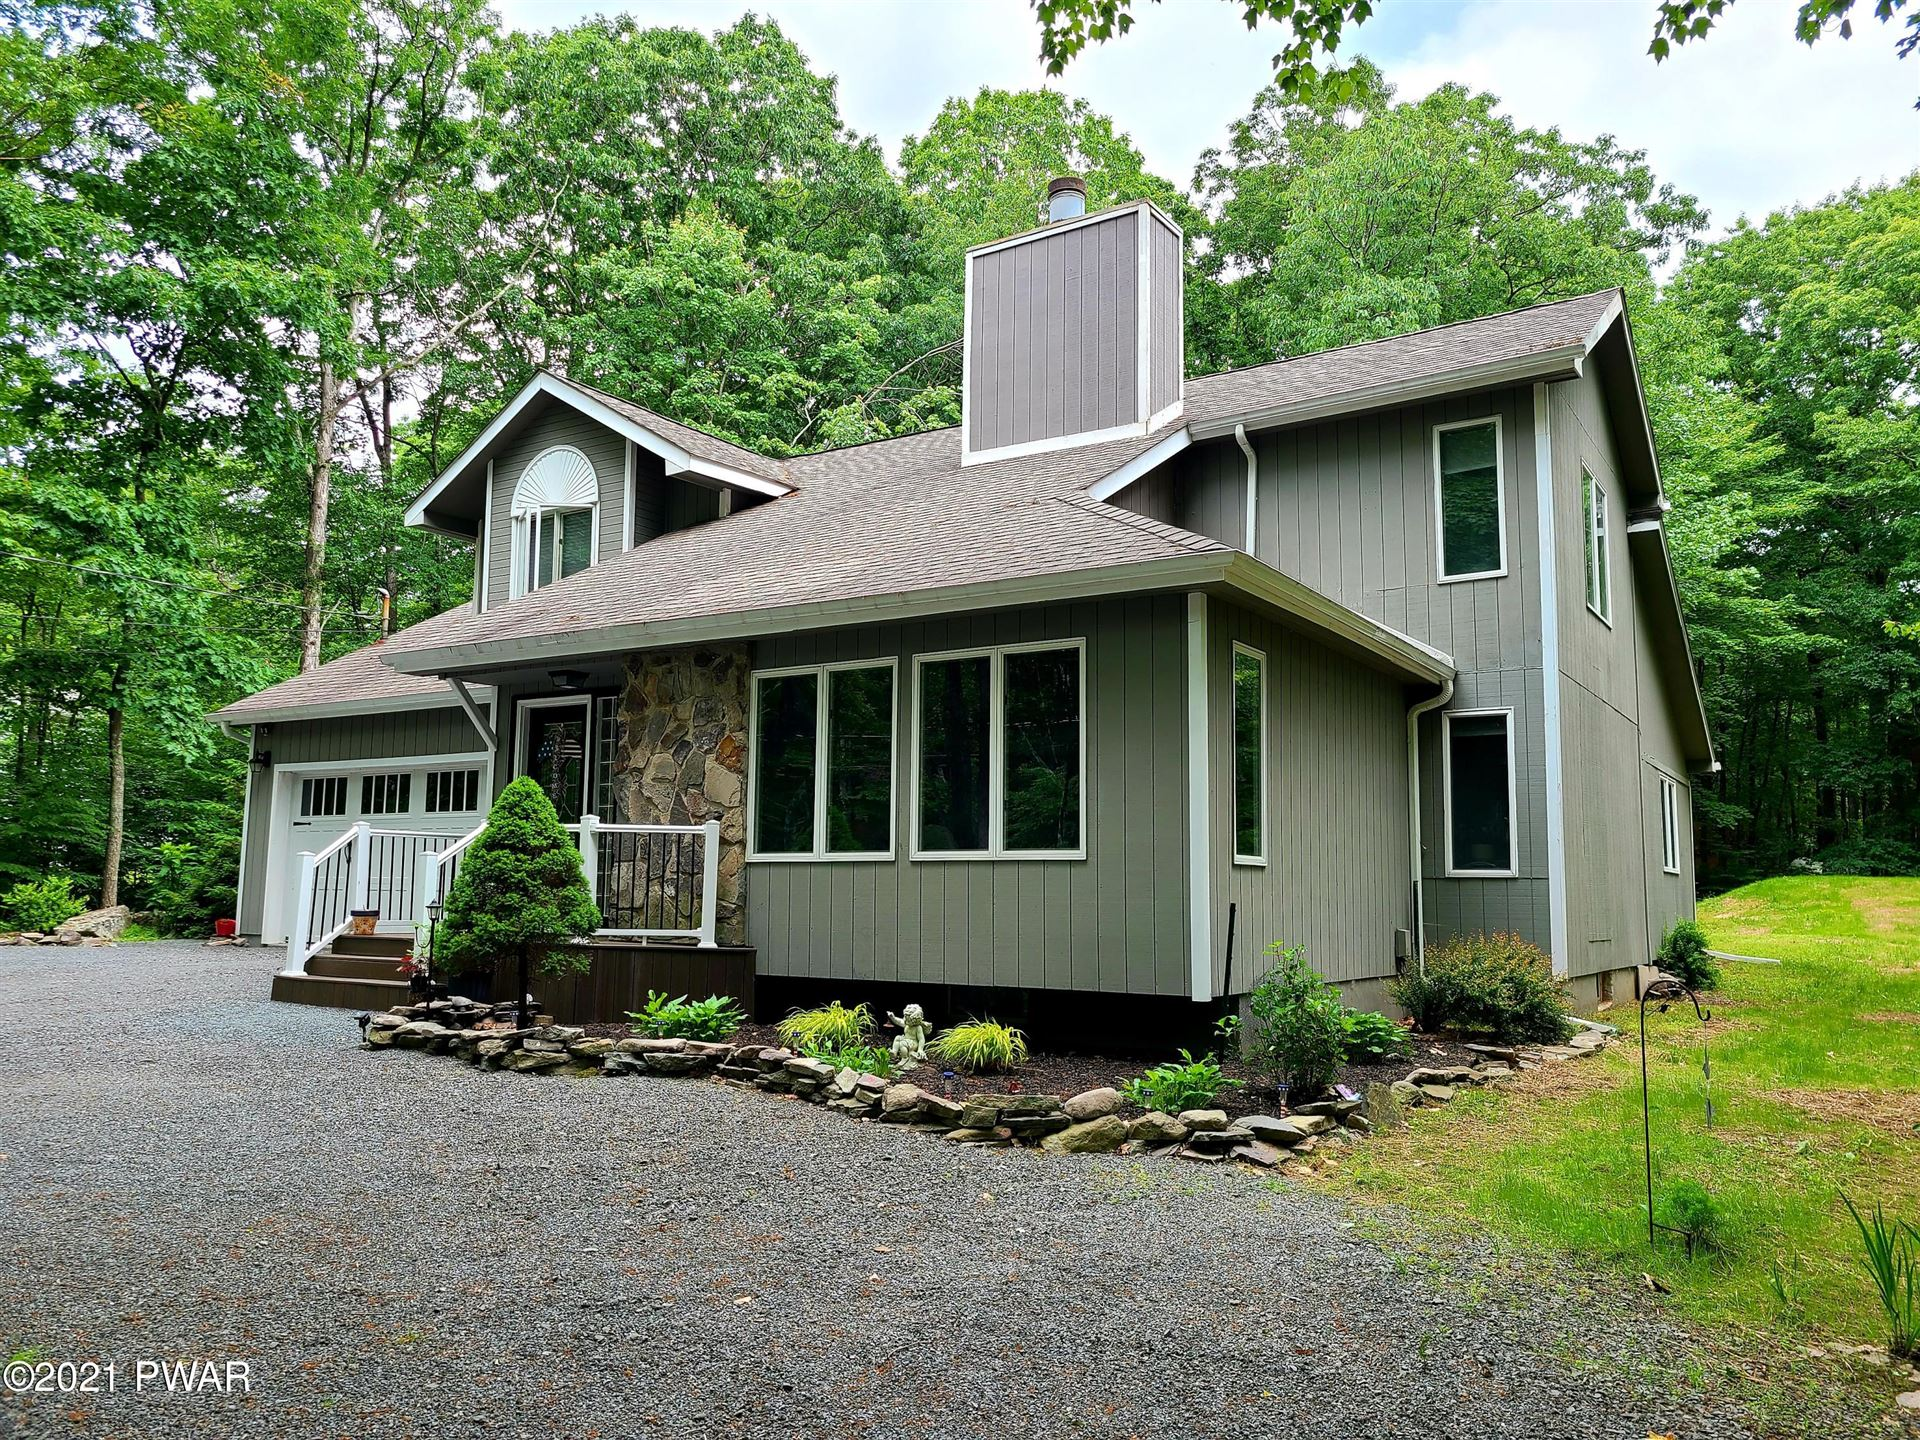 Photo of 103 Widgeon Ln, Lords Valley, PA (MLS # 21-2222)